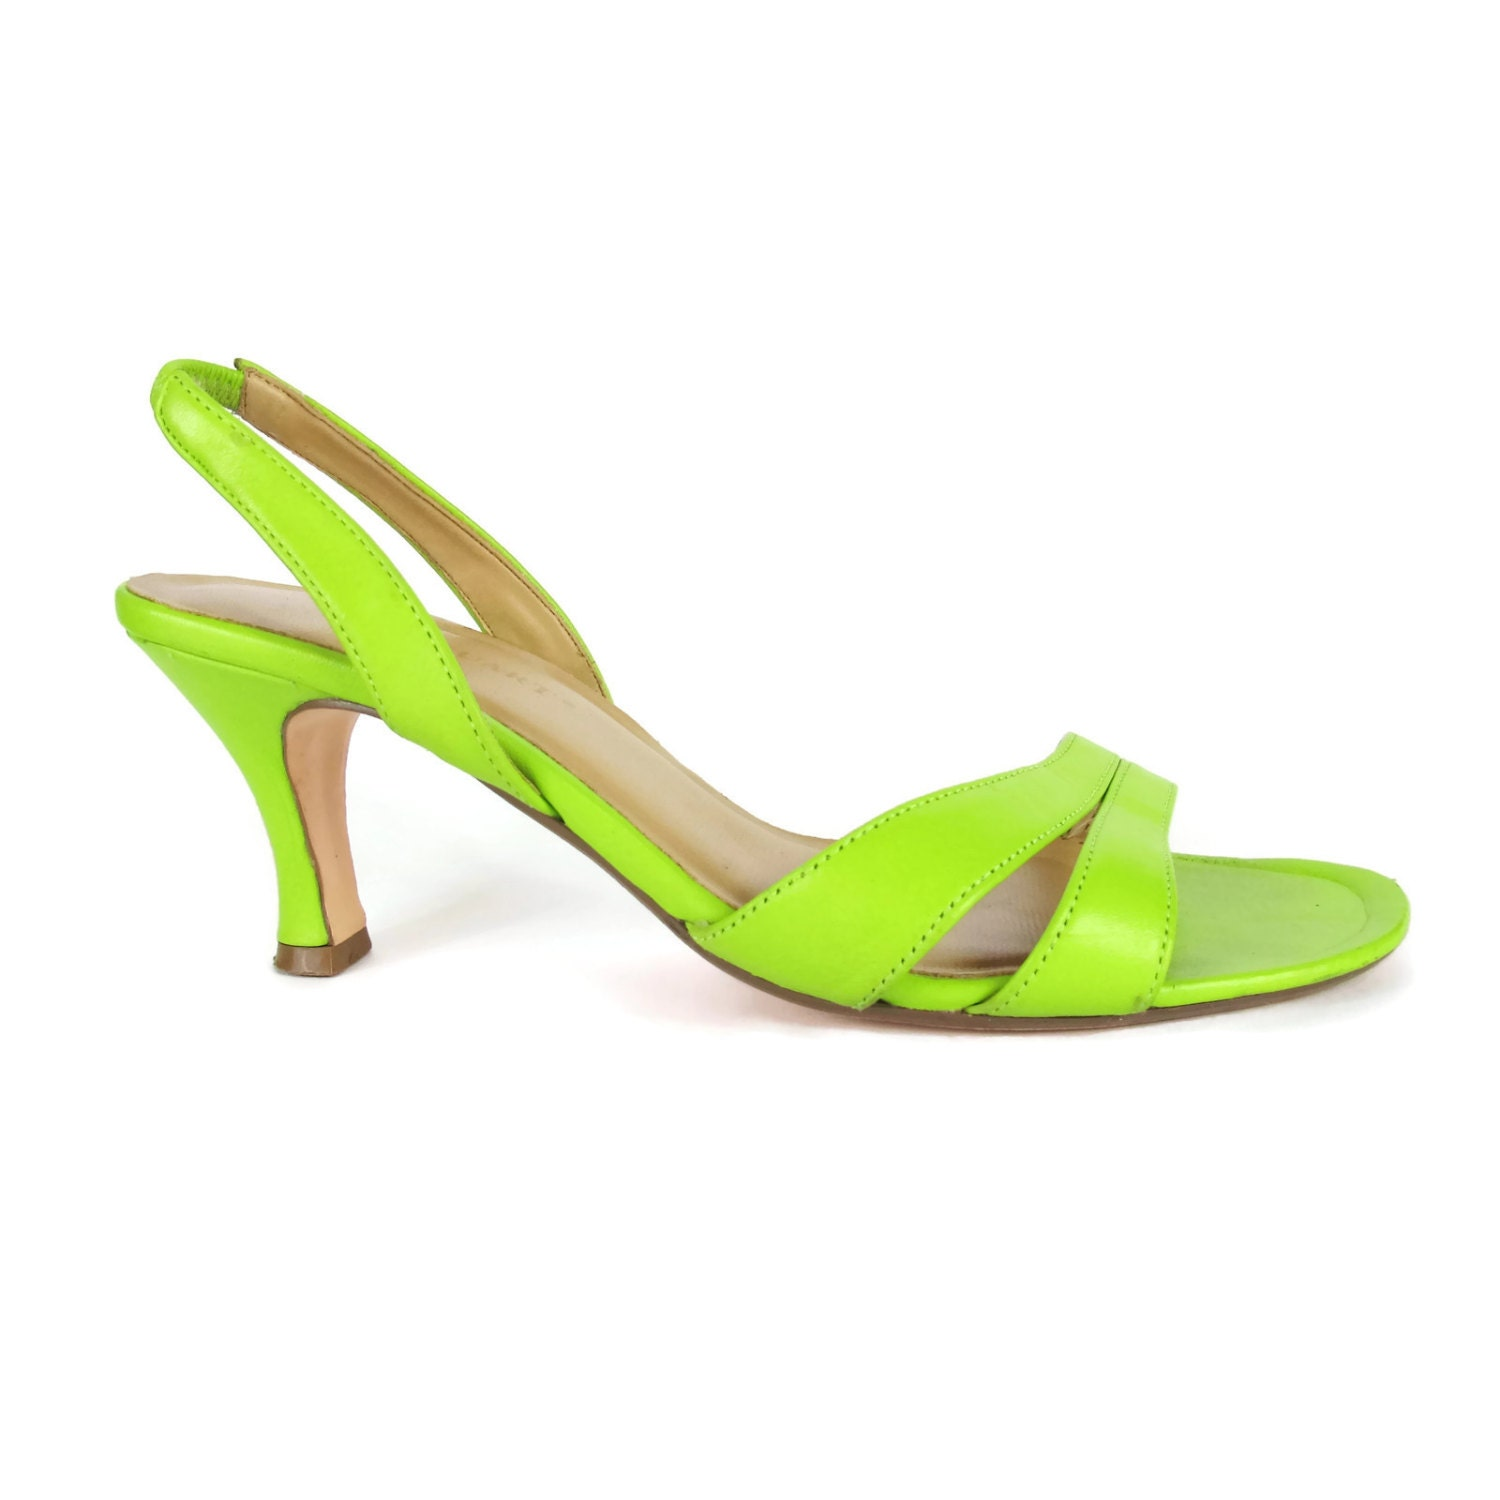 90s Lime Green Slingback Heels Open Toe Strappy Leather